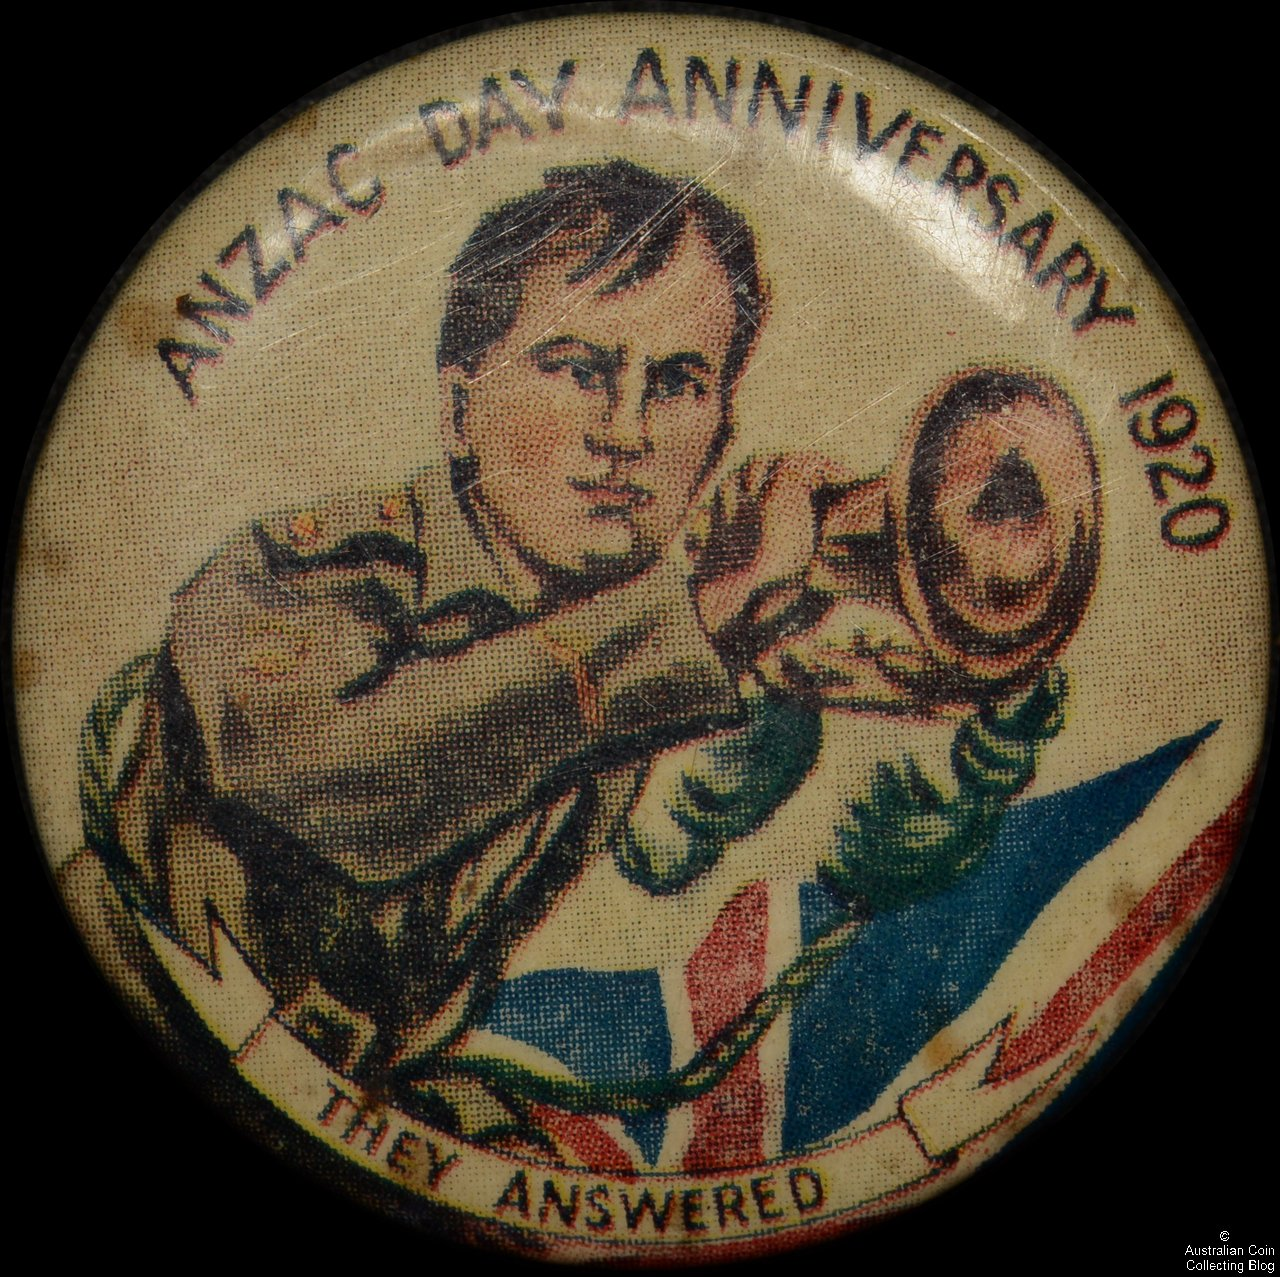 1920 ANZAC Day They Answered Tin Badge